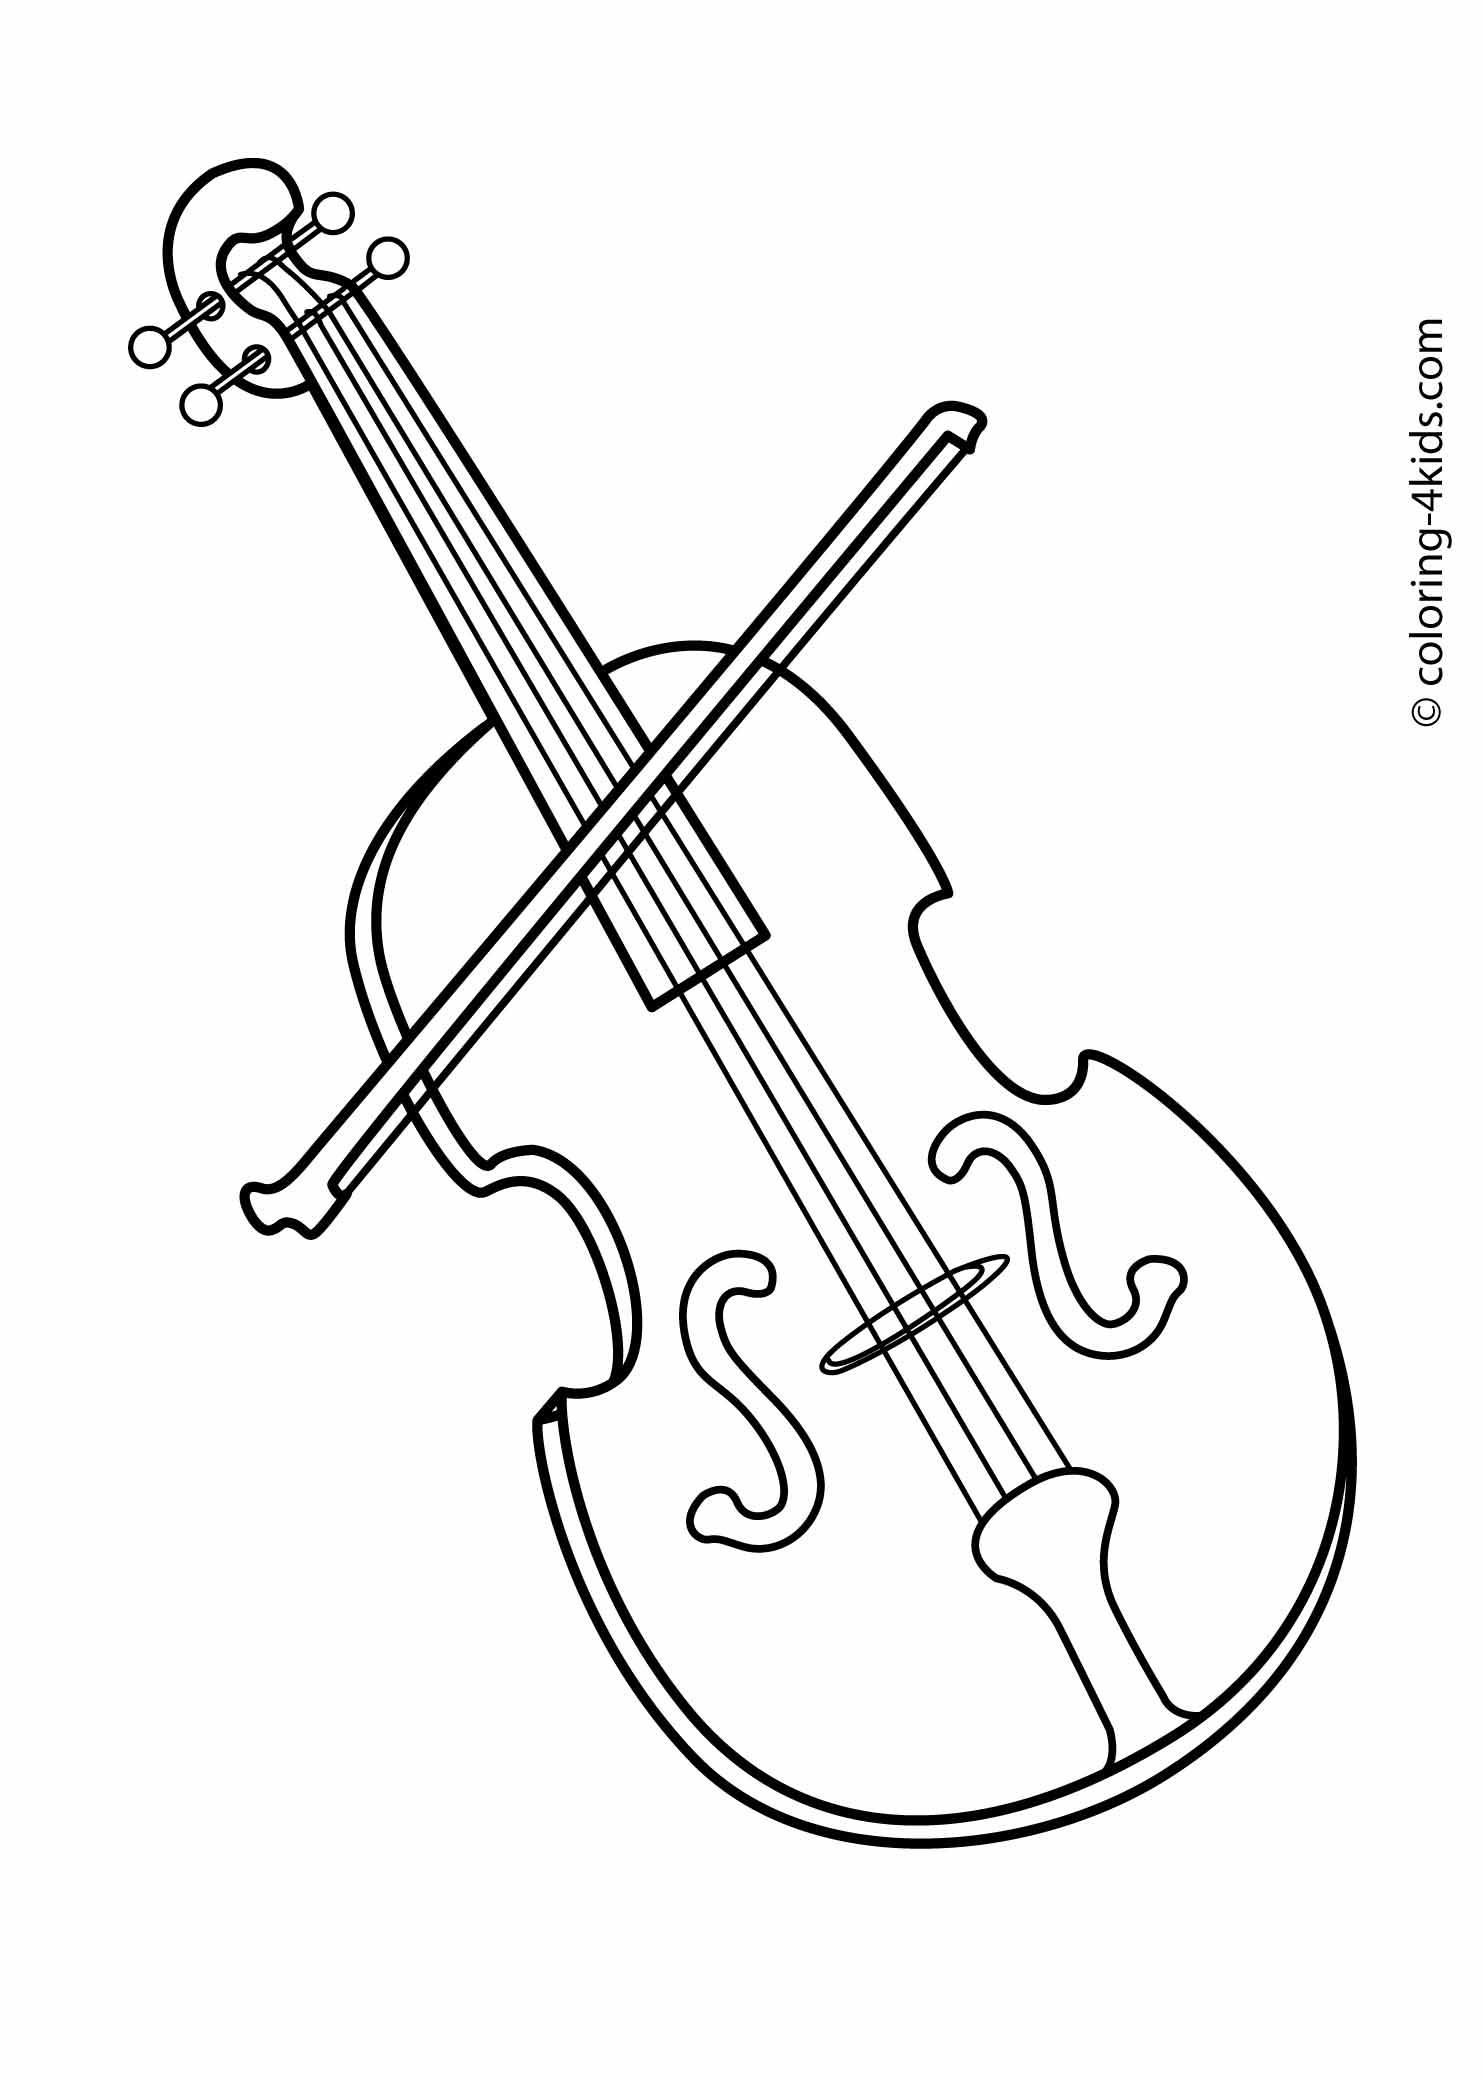 Violin Musical Instruments Coloring Pages For Kids